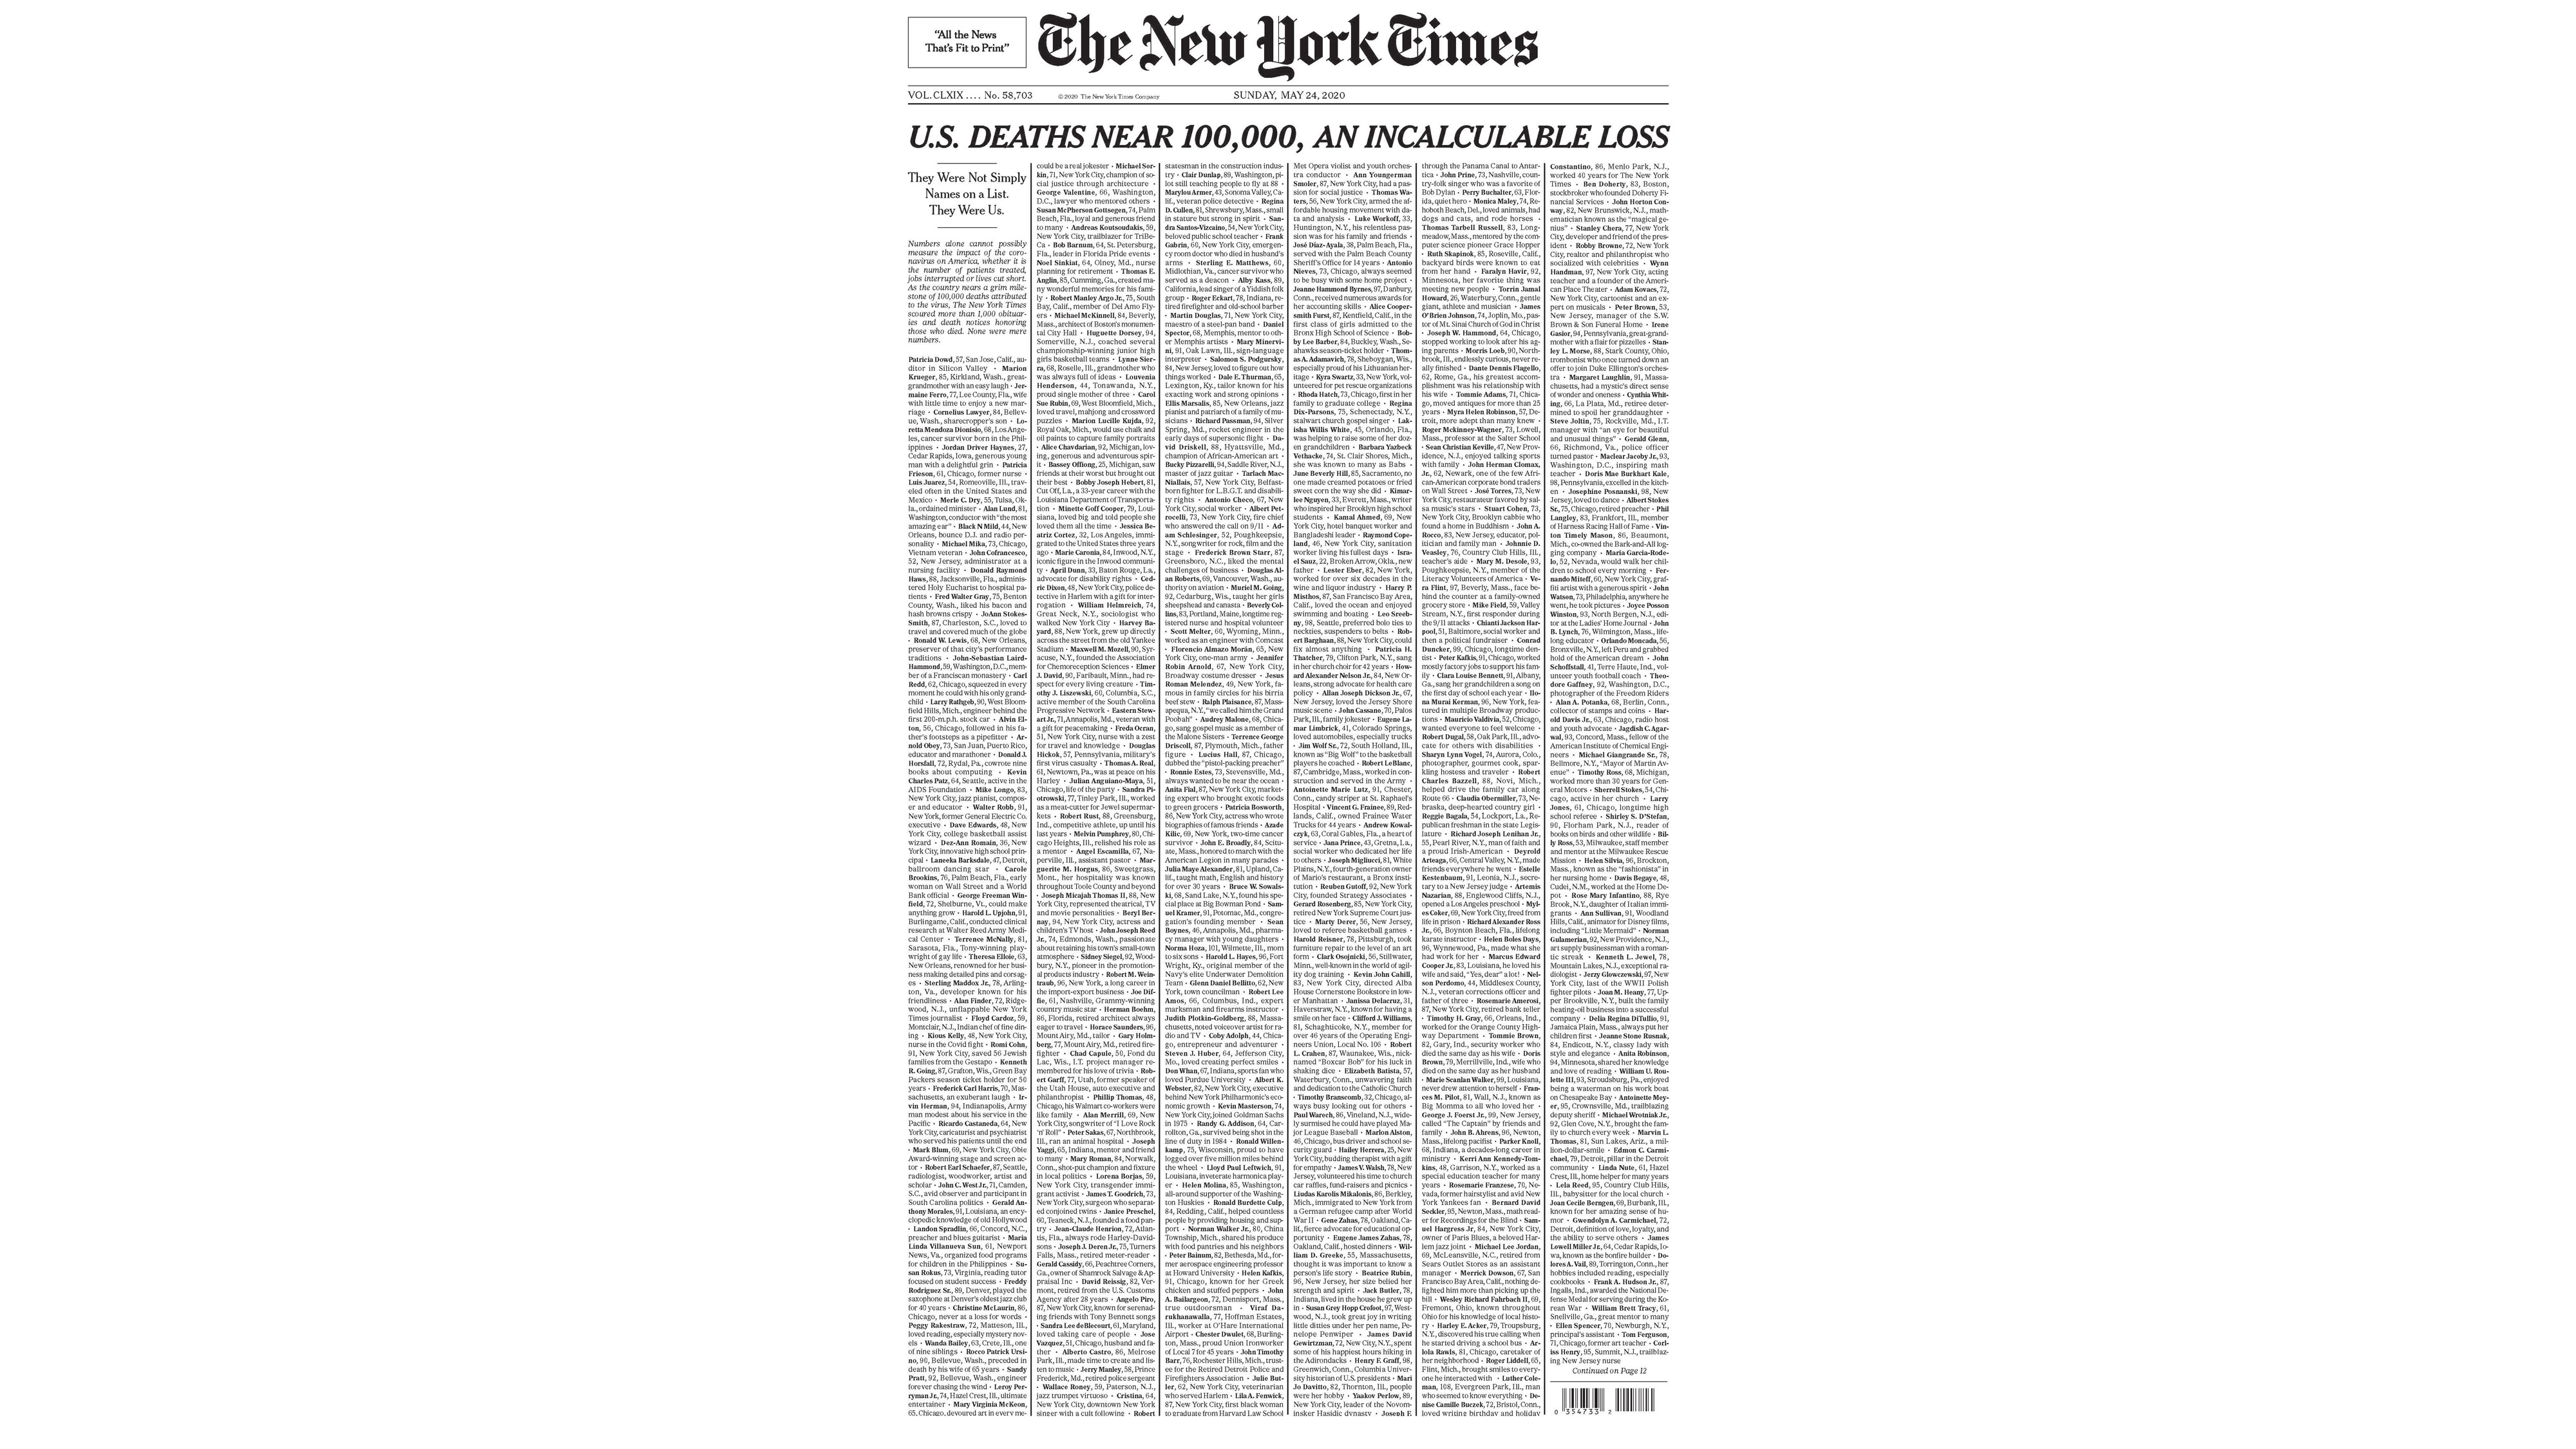 New York Times publishes names of 1,000 lives lost to coronavirus